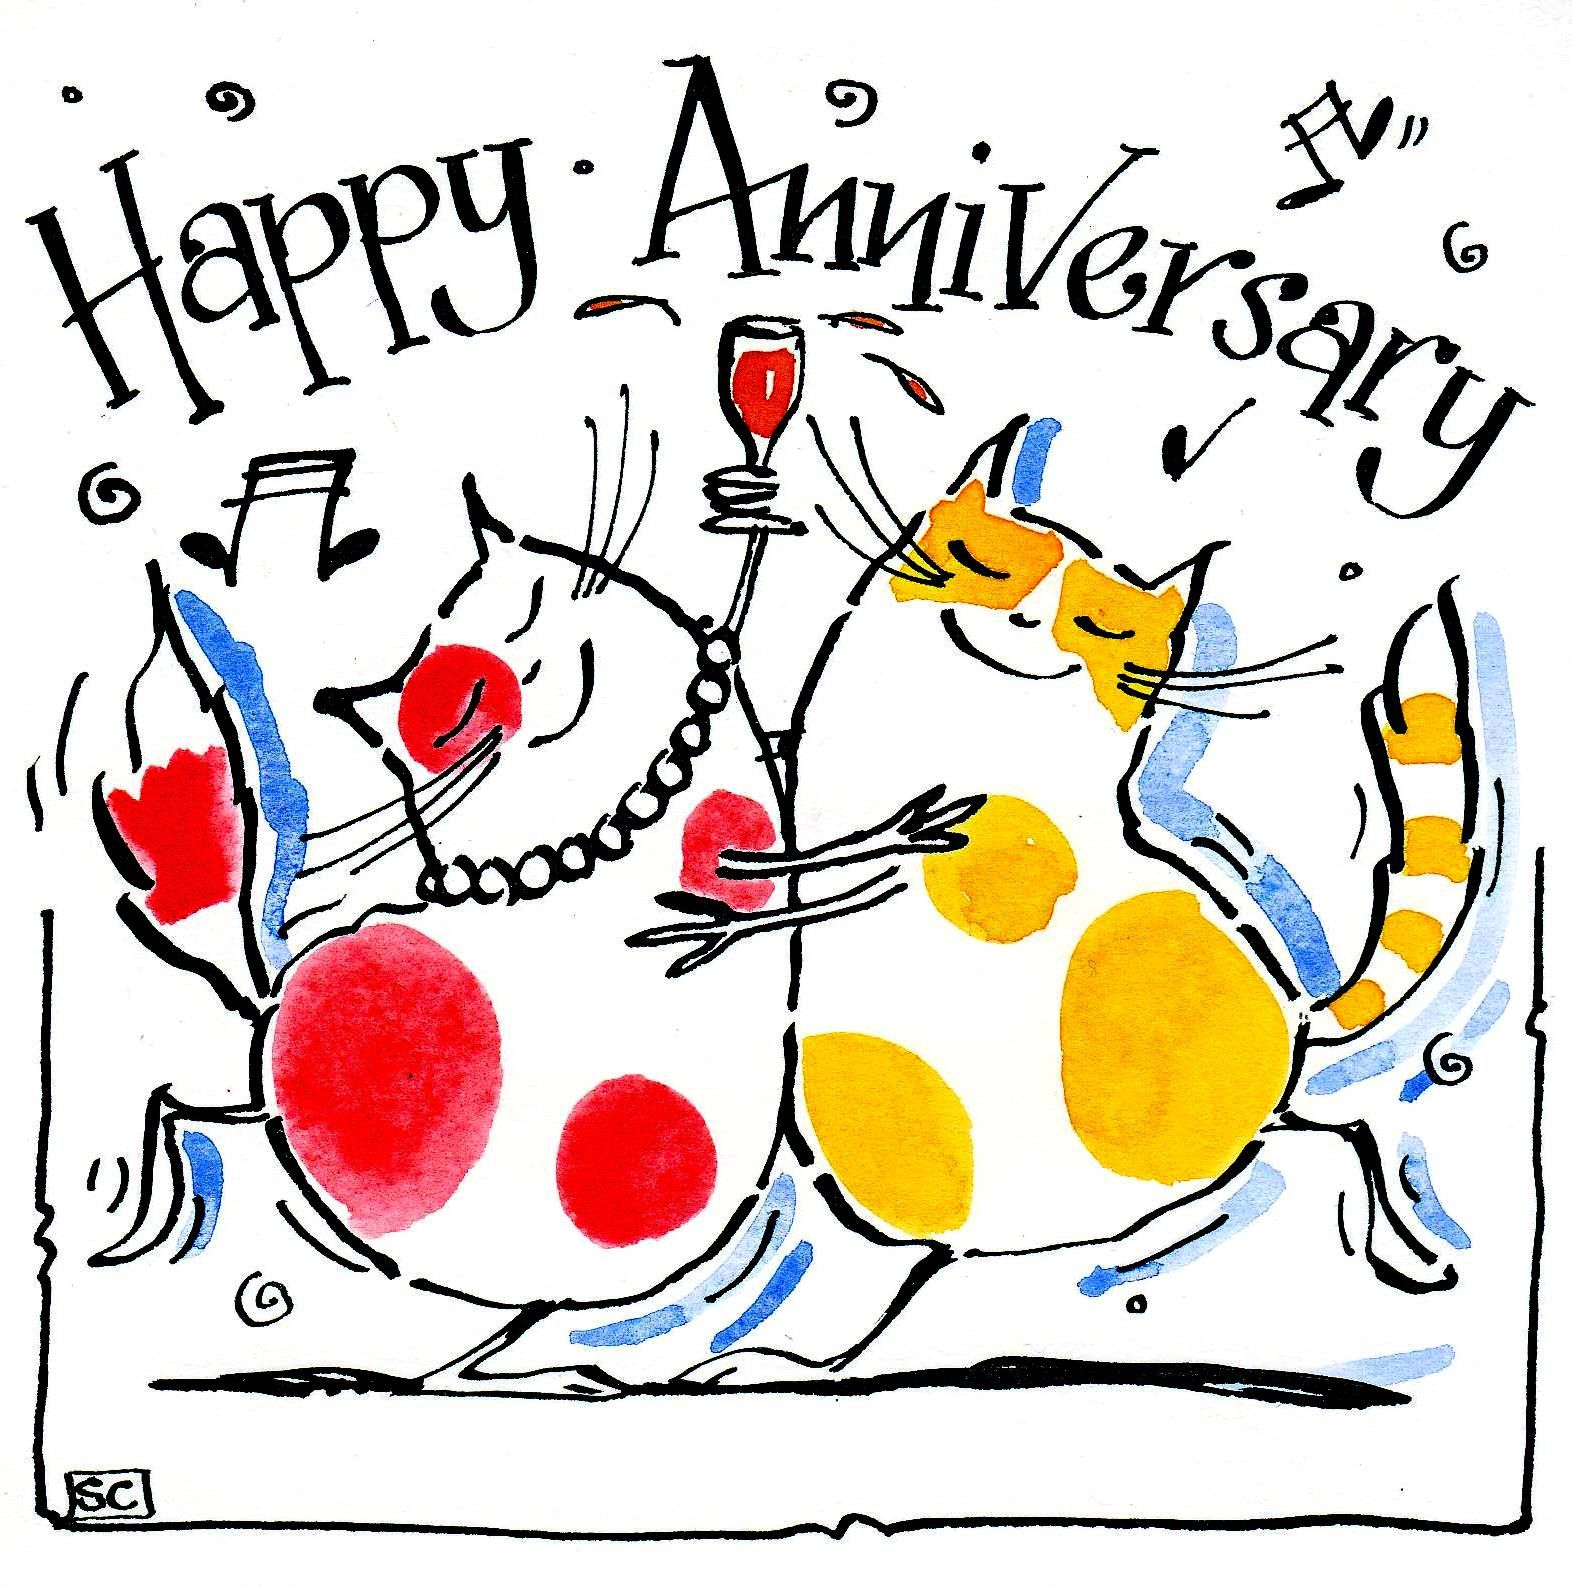 AnniversaryCard with cartoon cats dancing with caption Happy Anniversary